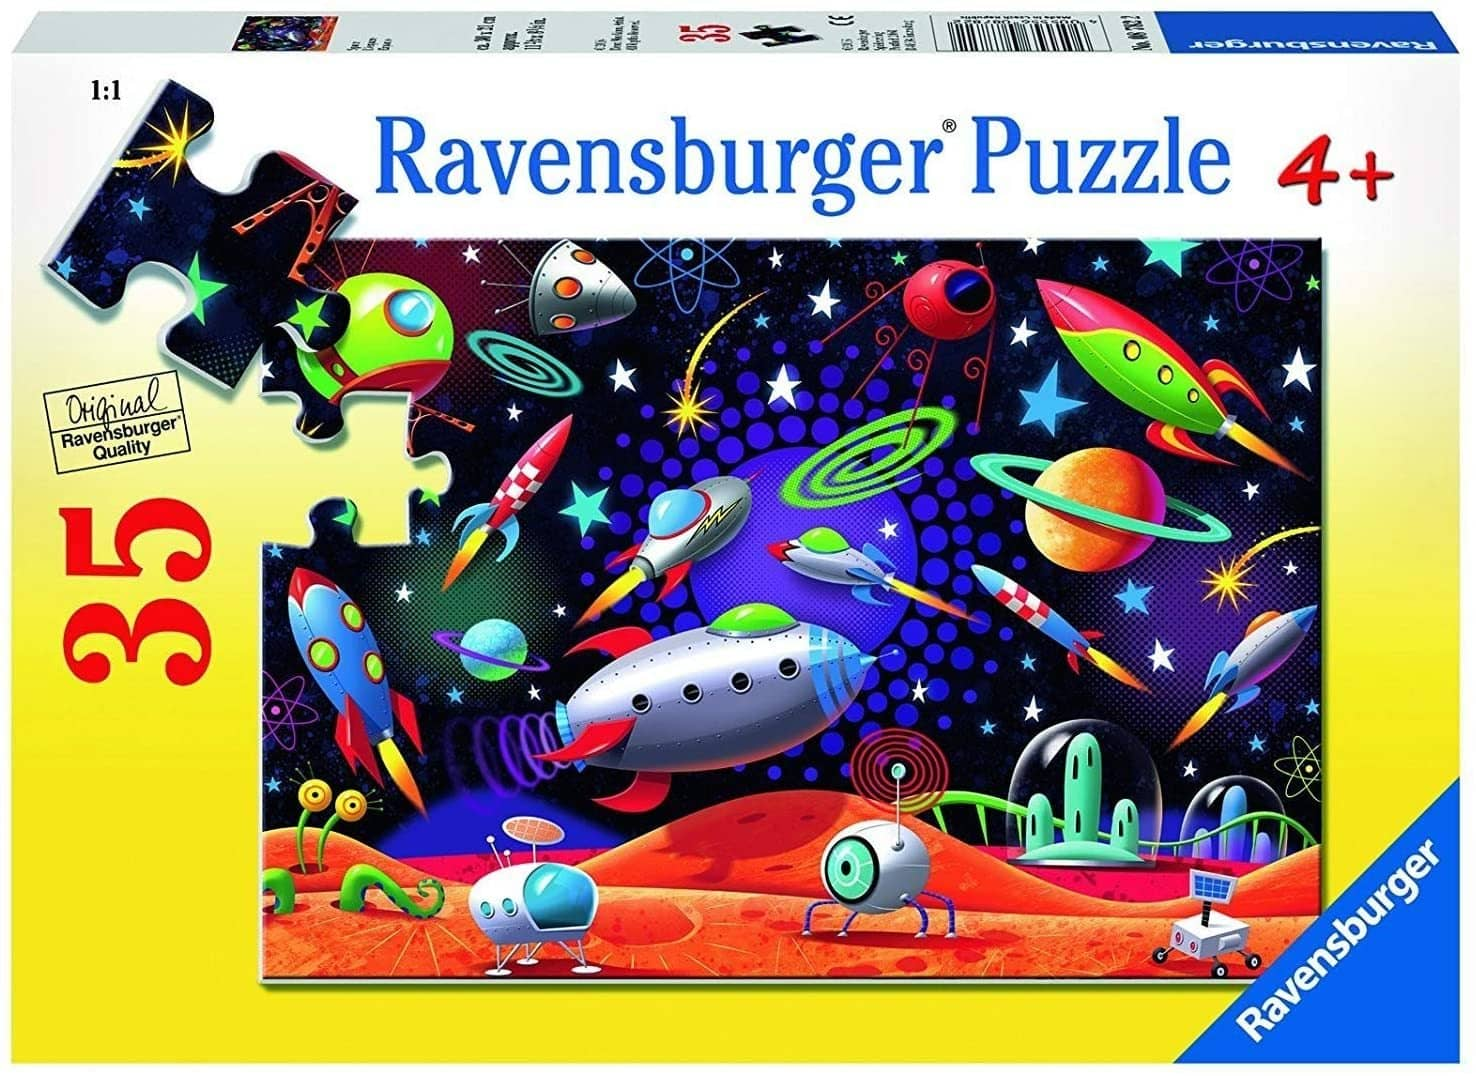 Ravensburger Space Jigsaw 35 Piece Jigsaw Puzzle For Kids – Every Piece Is Unique, Pieces Fit Together Perfectly-Kidding Around NYC